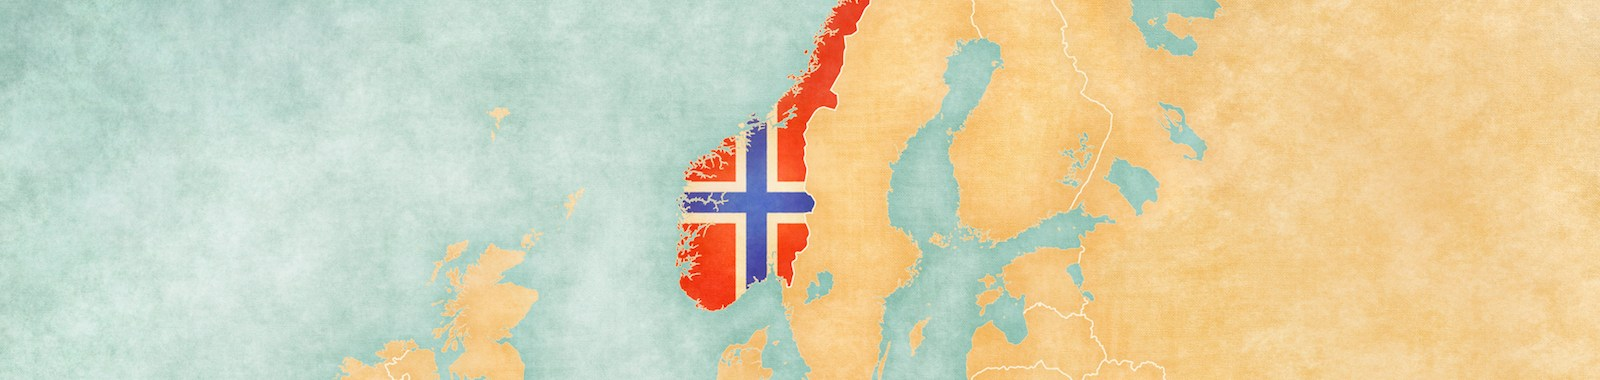 Norway (Norwegian flag) on the map of Europe. The Map is in vintage summer style and sunny mood. The map has a soft grunge and vintage atmosphere, which acts as watercolor painting on old paper.